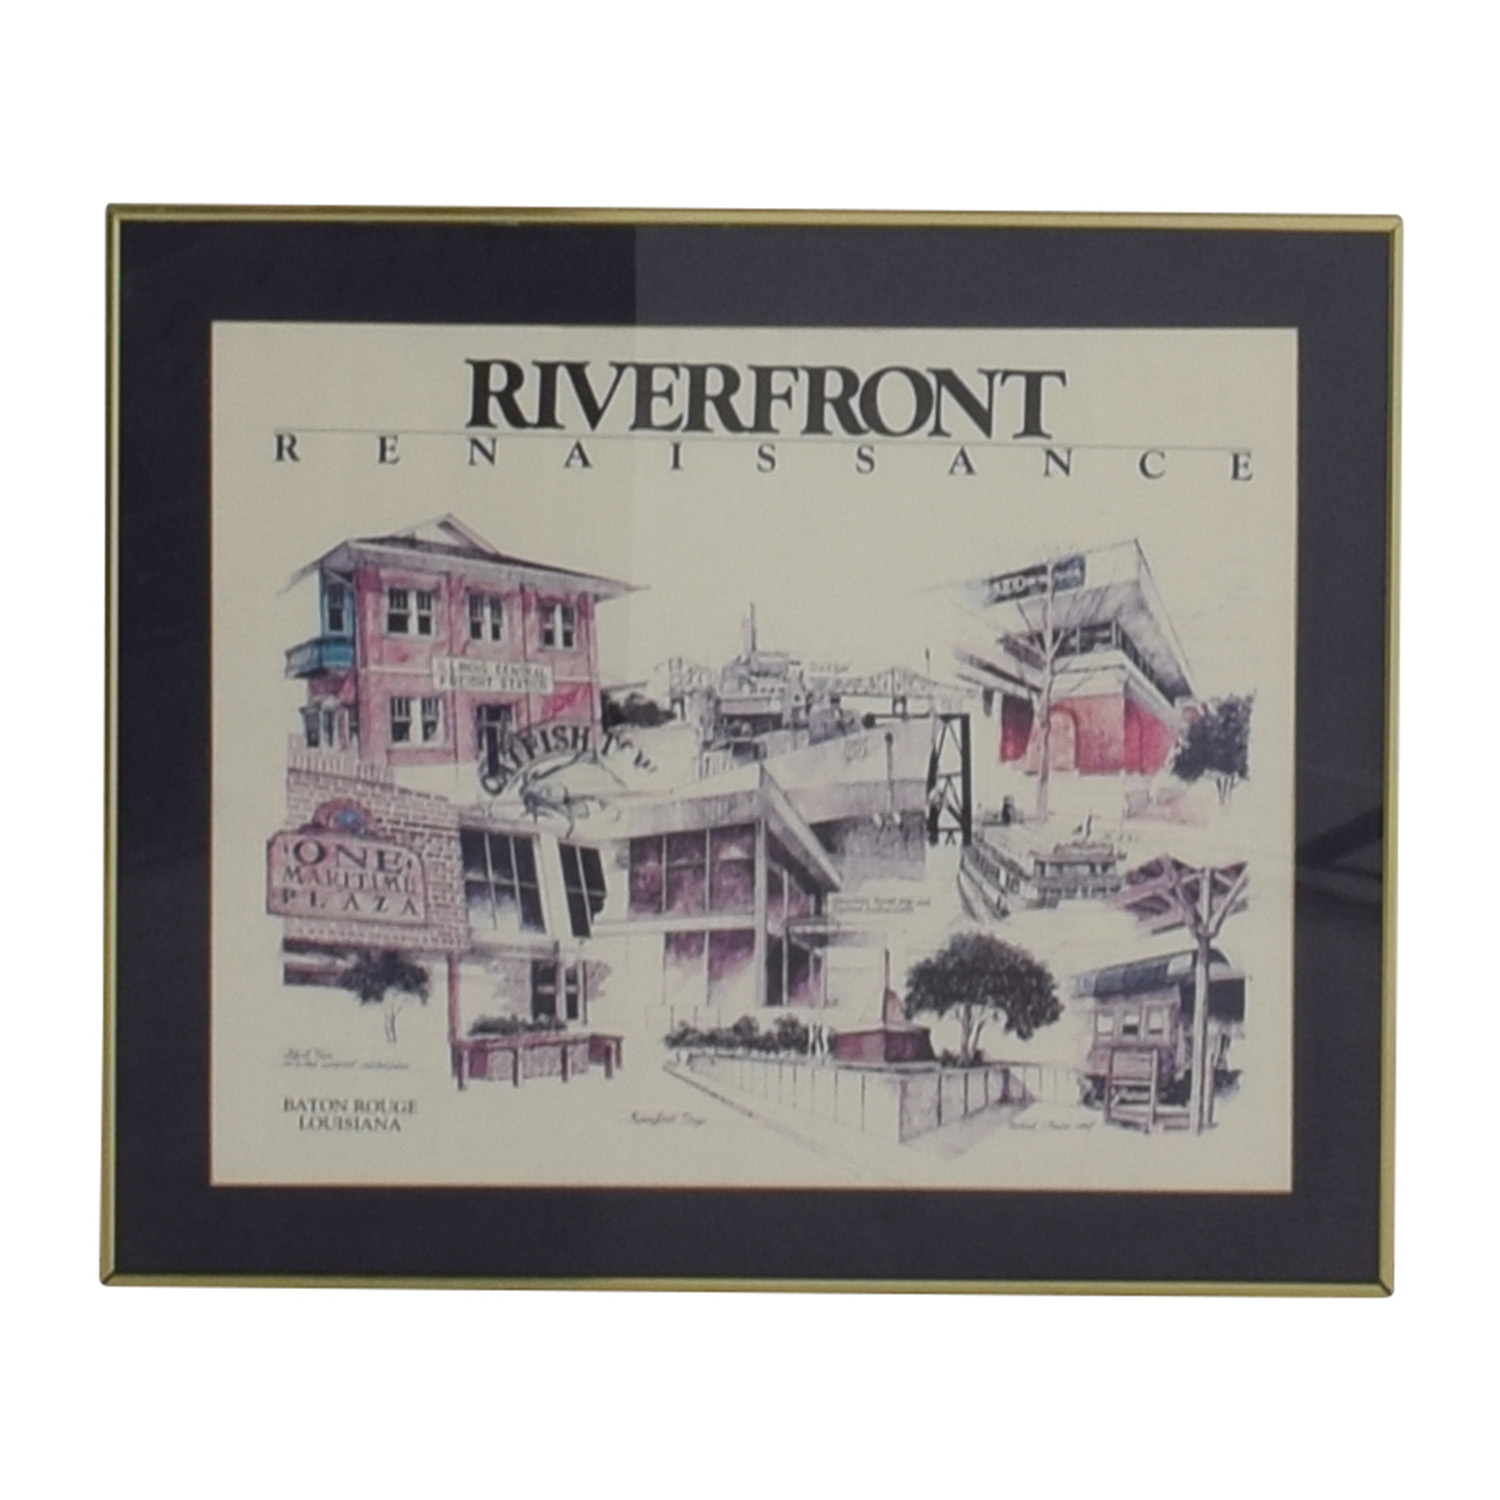 Riverfront Framed Print coupon